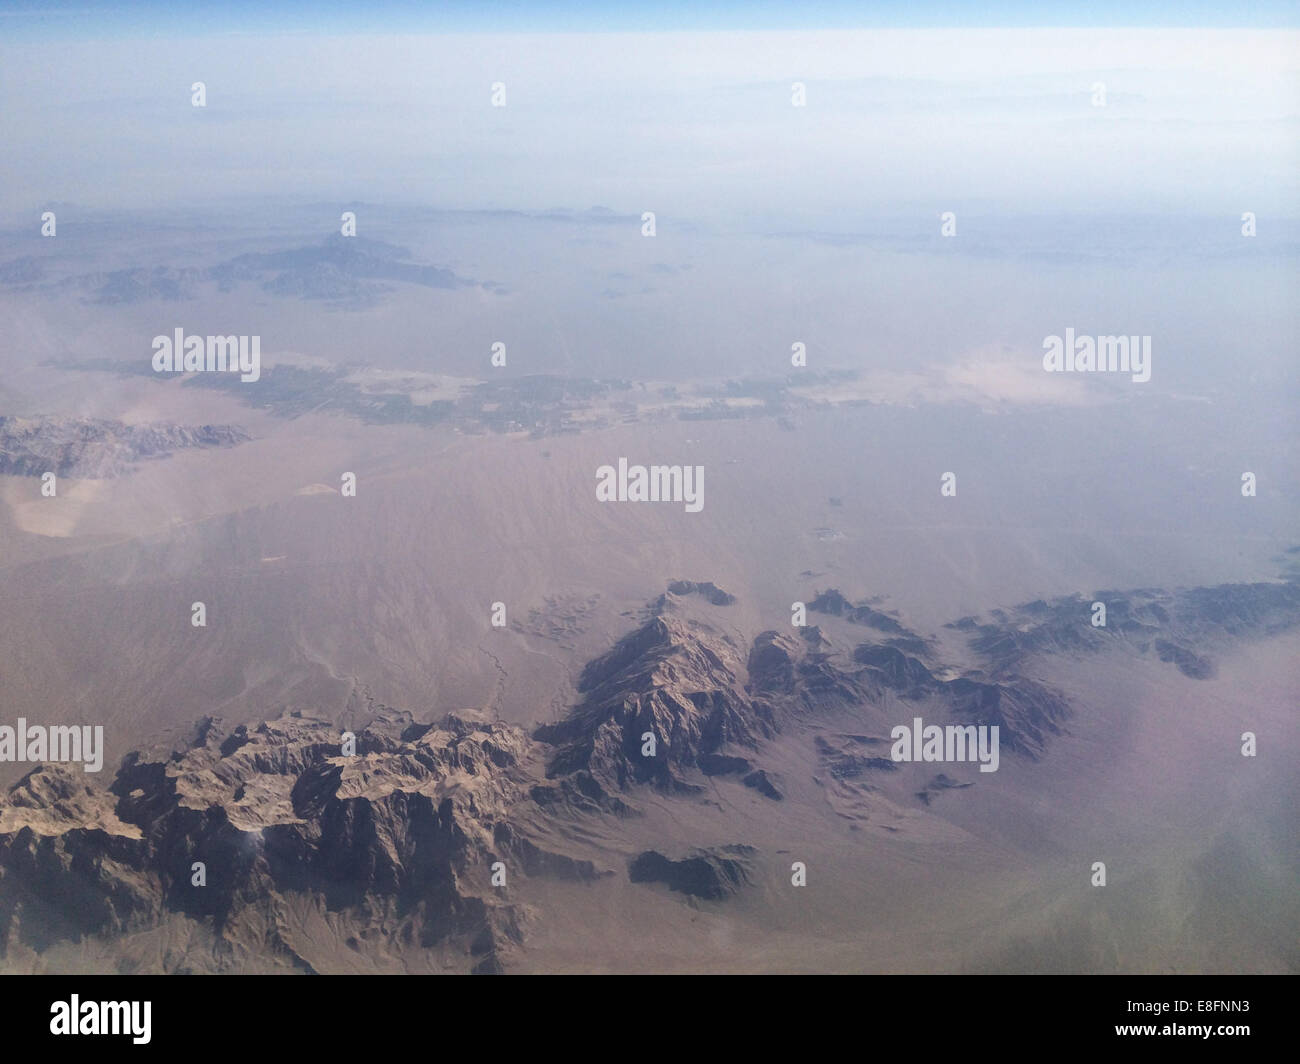 Iran, Mountain range from above - Stock Image